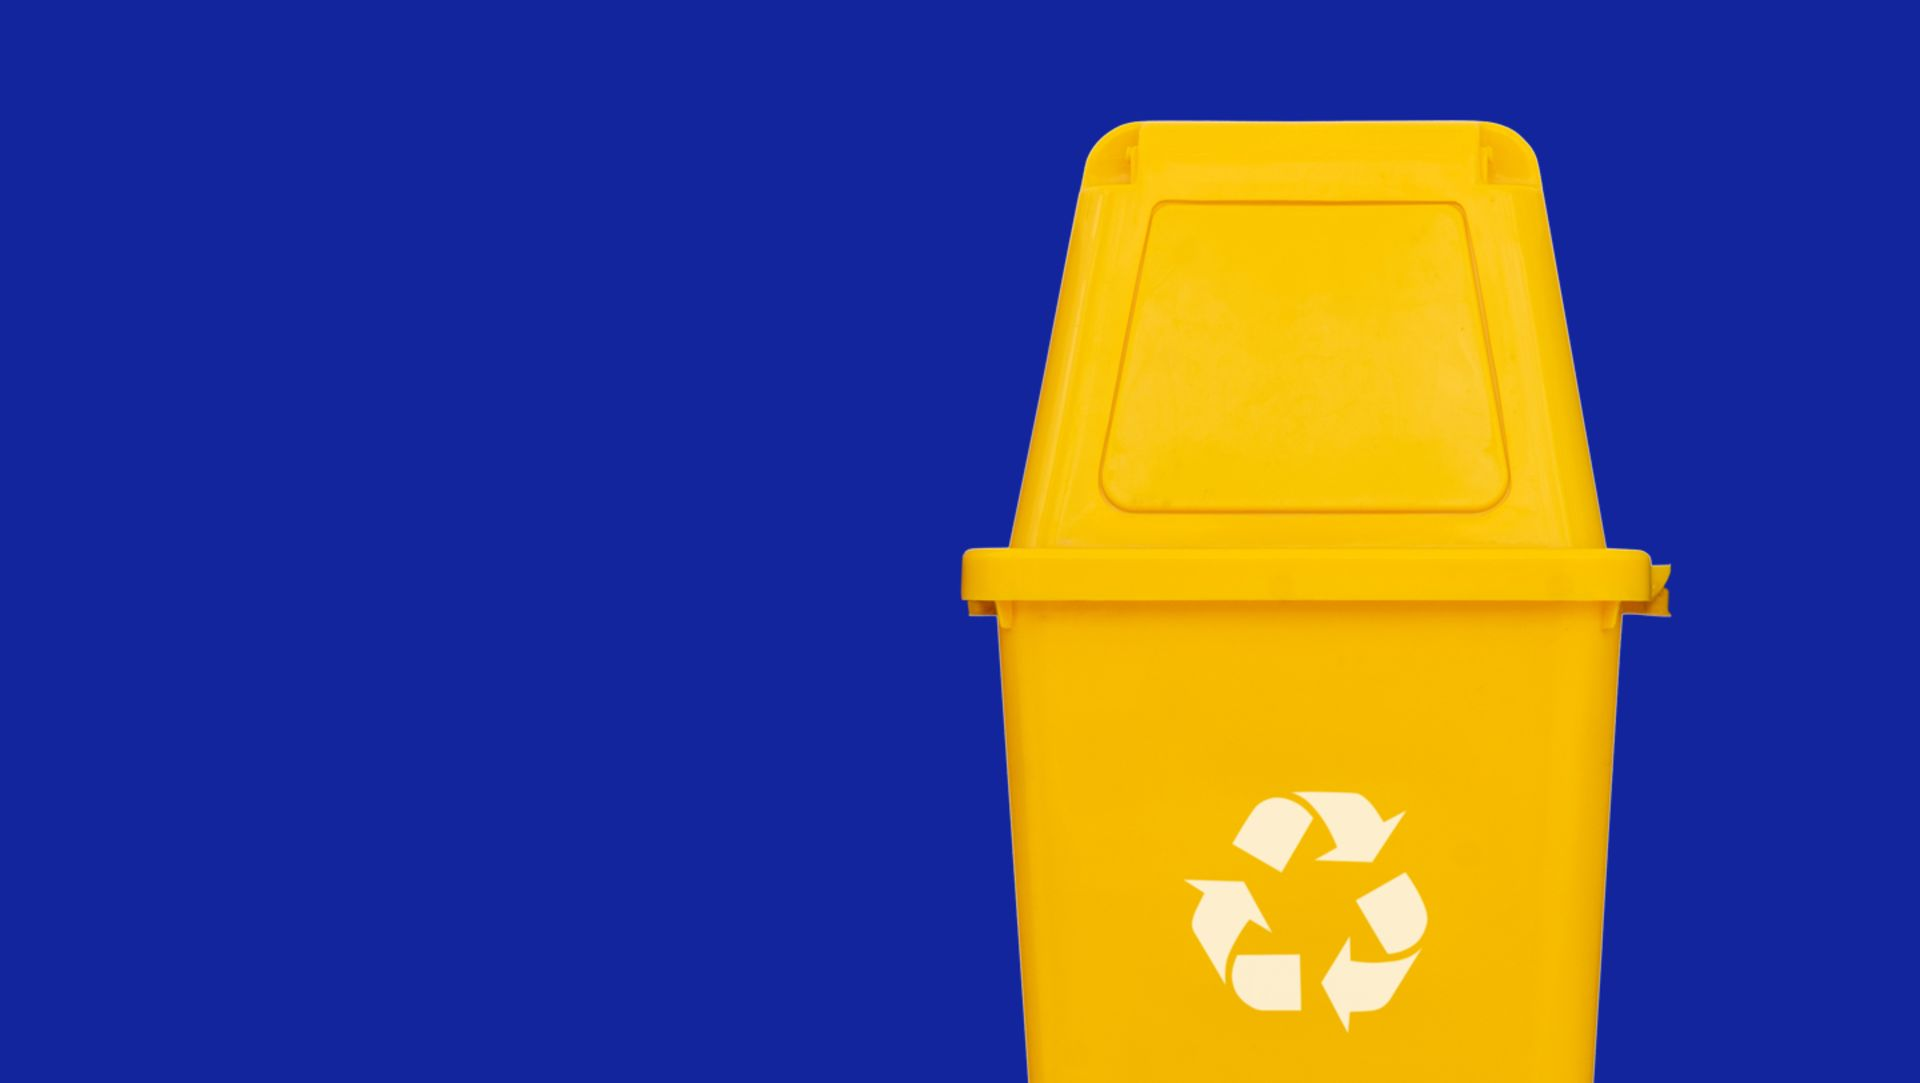 Making recycling simple